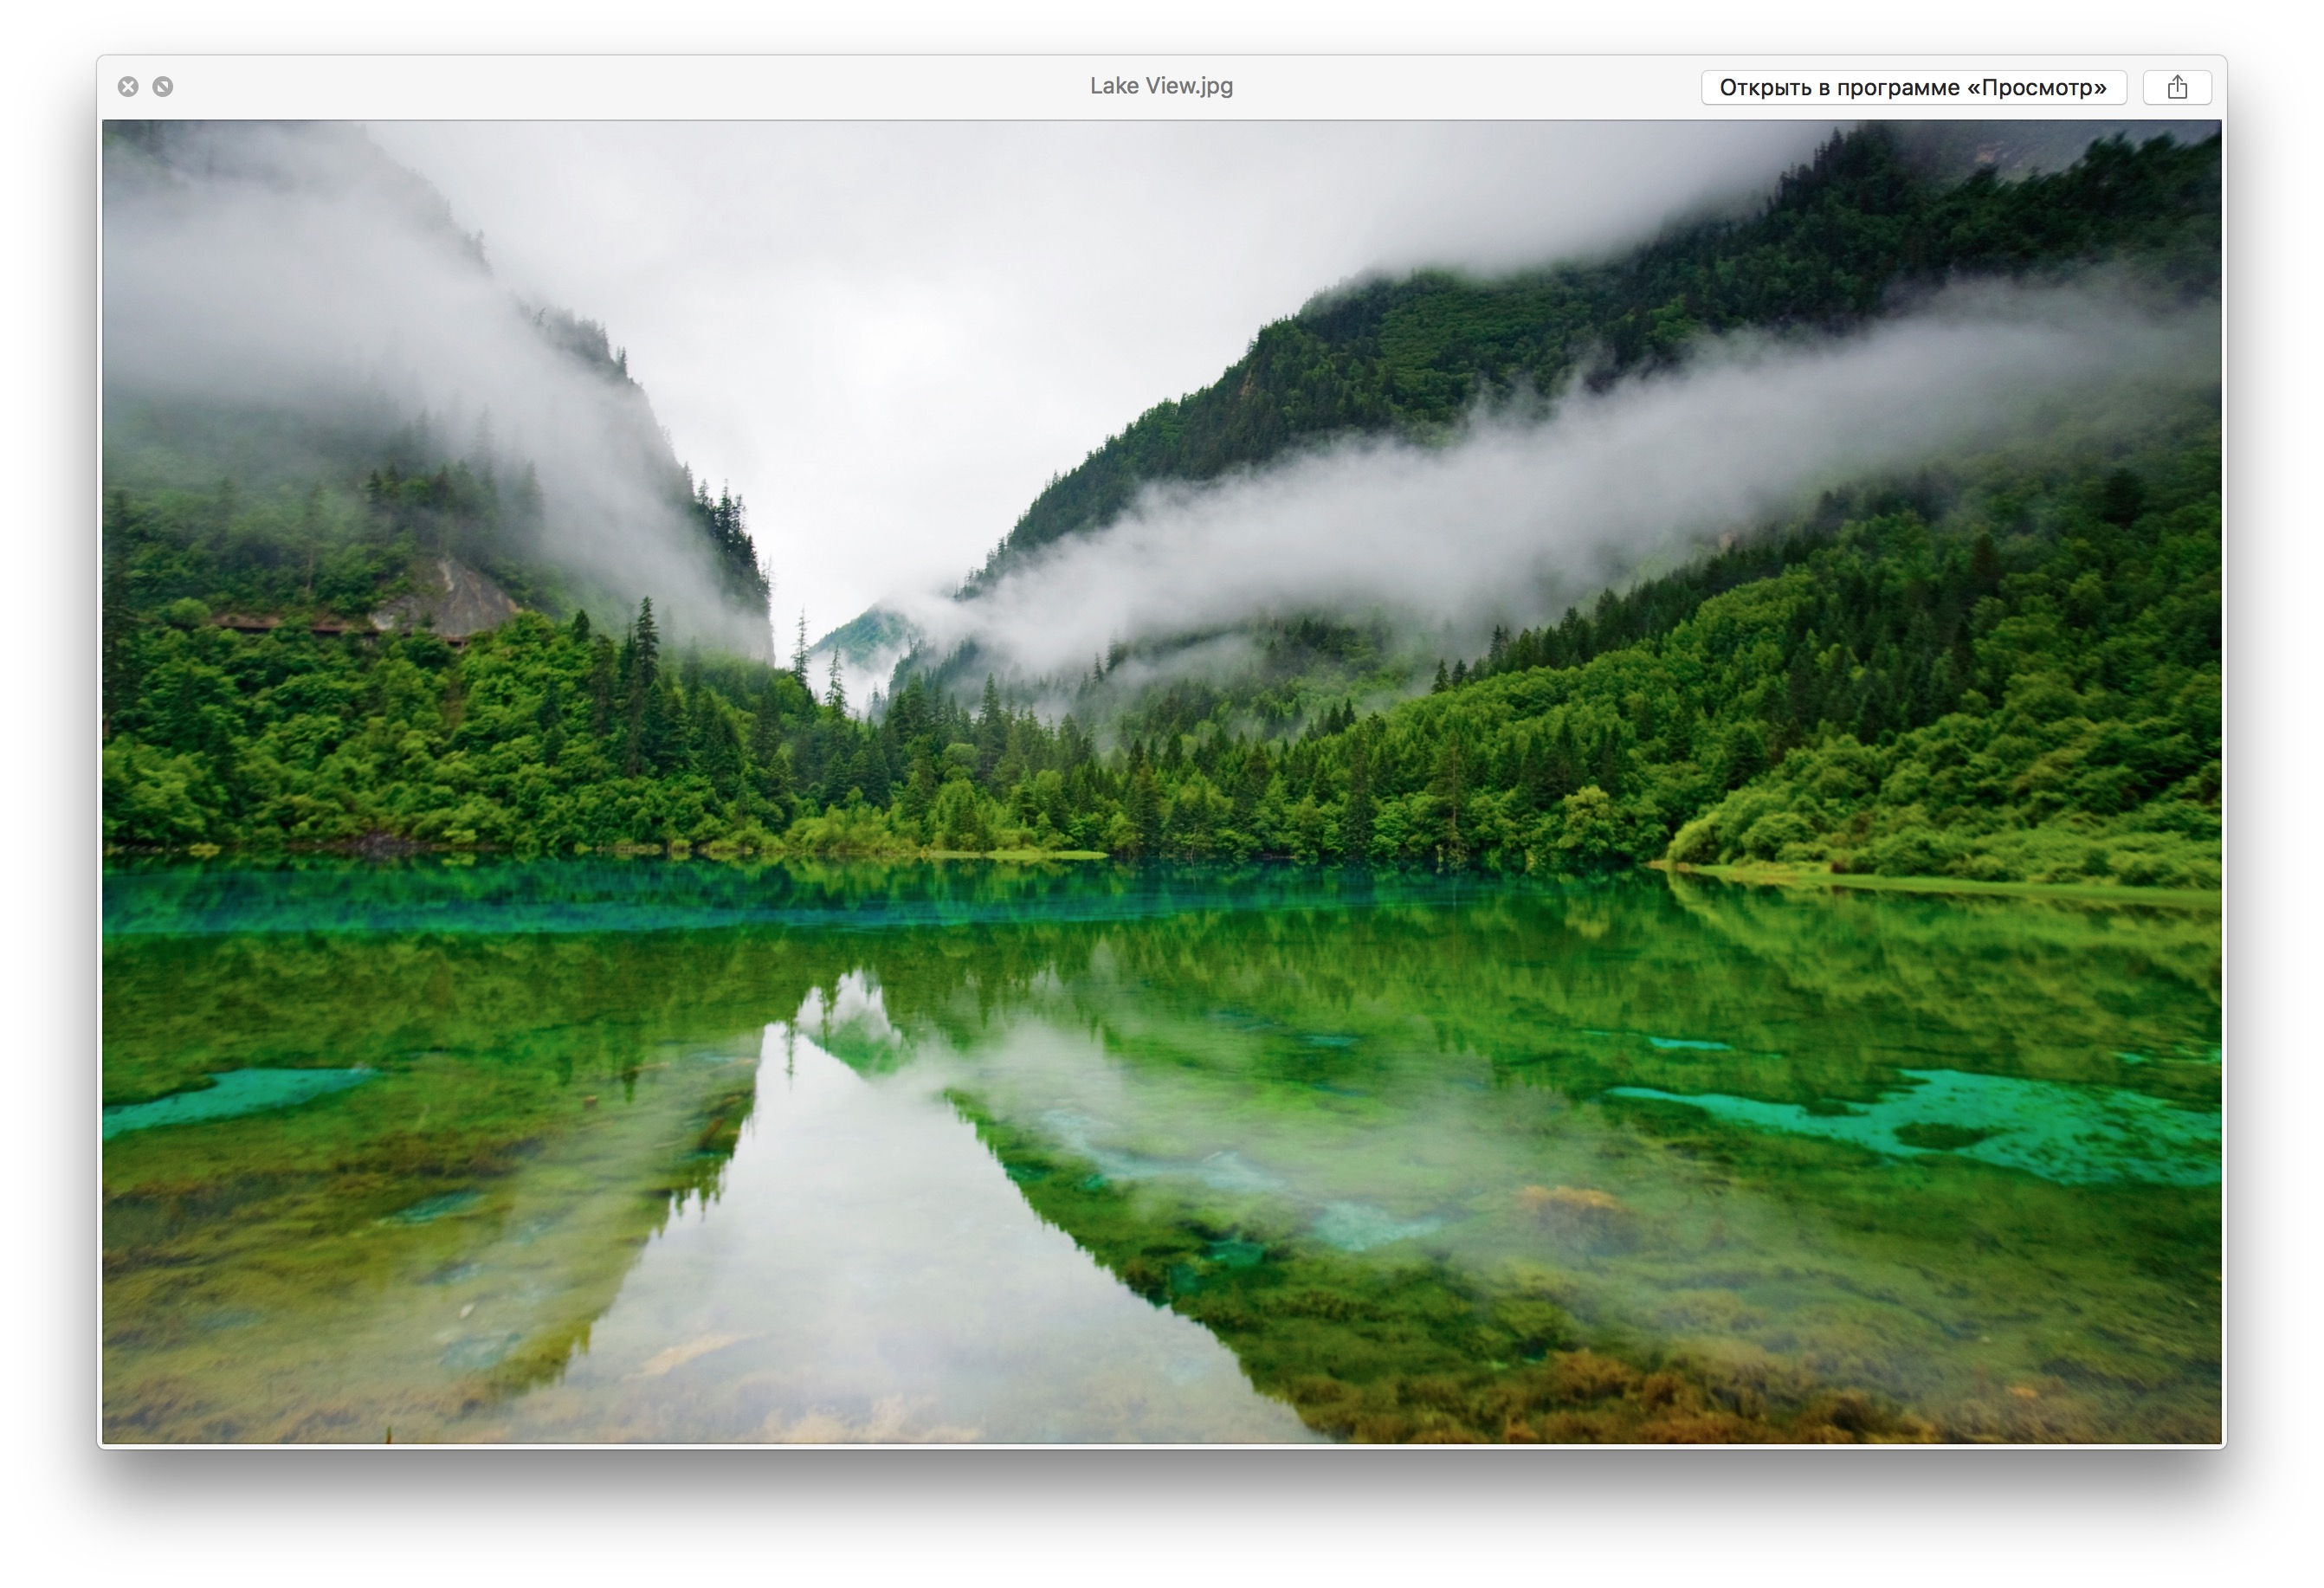 How to create a unique welcome screen in OS X El Capitan